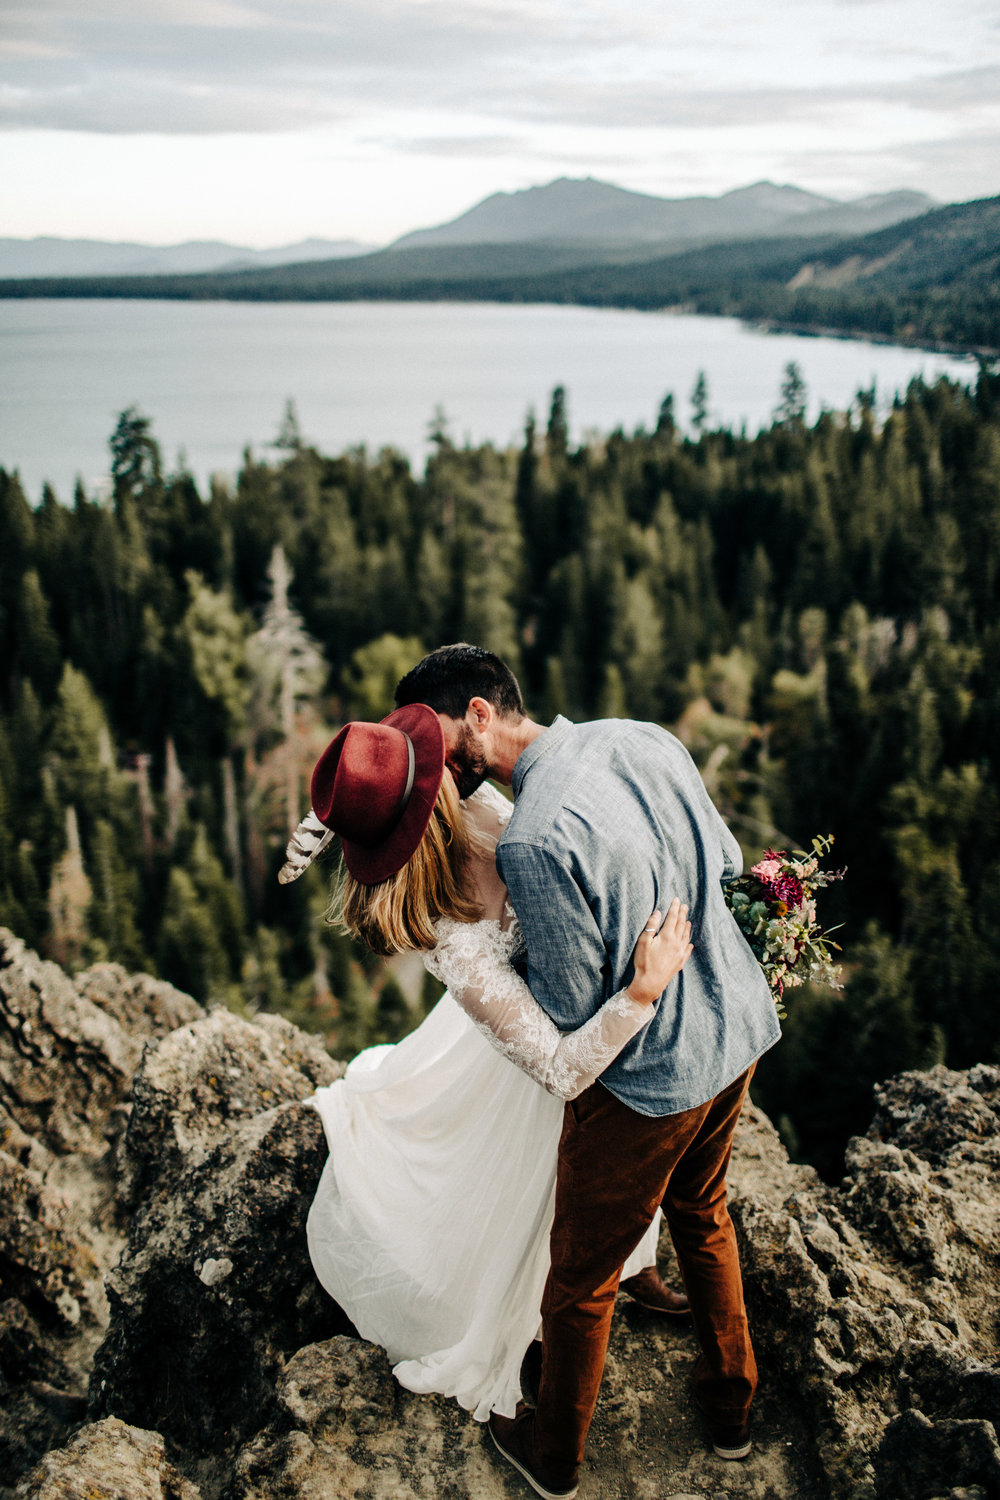 LAKE TAHOE ELOPEMENT PLANNING PACKAGE // STARTING AT $6500 - Yeah, you read that right. I'll plan your Lake Tahoe Elopement, and I'll do it with a smile on my face. I was born and raised just northwest of the north shore of Lake Tahoe - so you could say I know it well. I have a list of vendors I love working with and frequently use for projects - and would love to put together a special day, just for you.- up to 8 guests - Mt. Tallac package- medium bouquet + boutonniere- officiant - hair + makeup - custom locationAdditionally, I am happy to help you find a great place to grab dinner (or breakfast! Love sunrise weddings) after you say your vows, help you pick the best airbnb in the best parts of town, and give you endless advice and recommendations on how to enjoy your time in Tahoe after your elopement.** also available in other destinations, just ask!